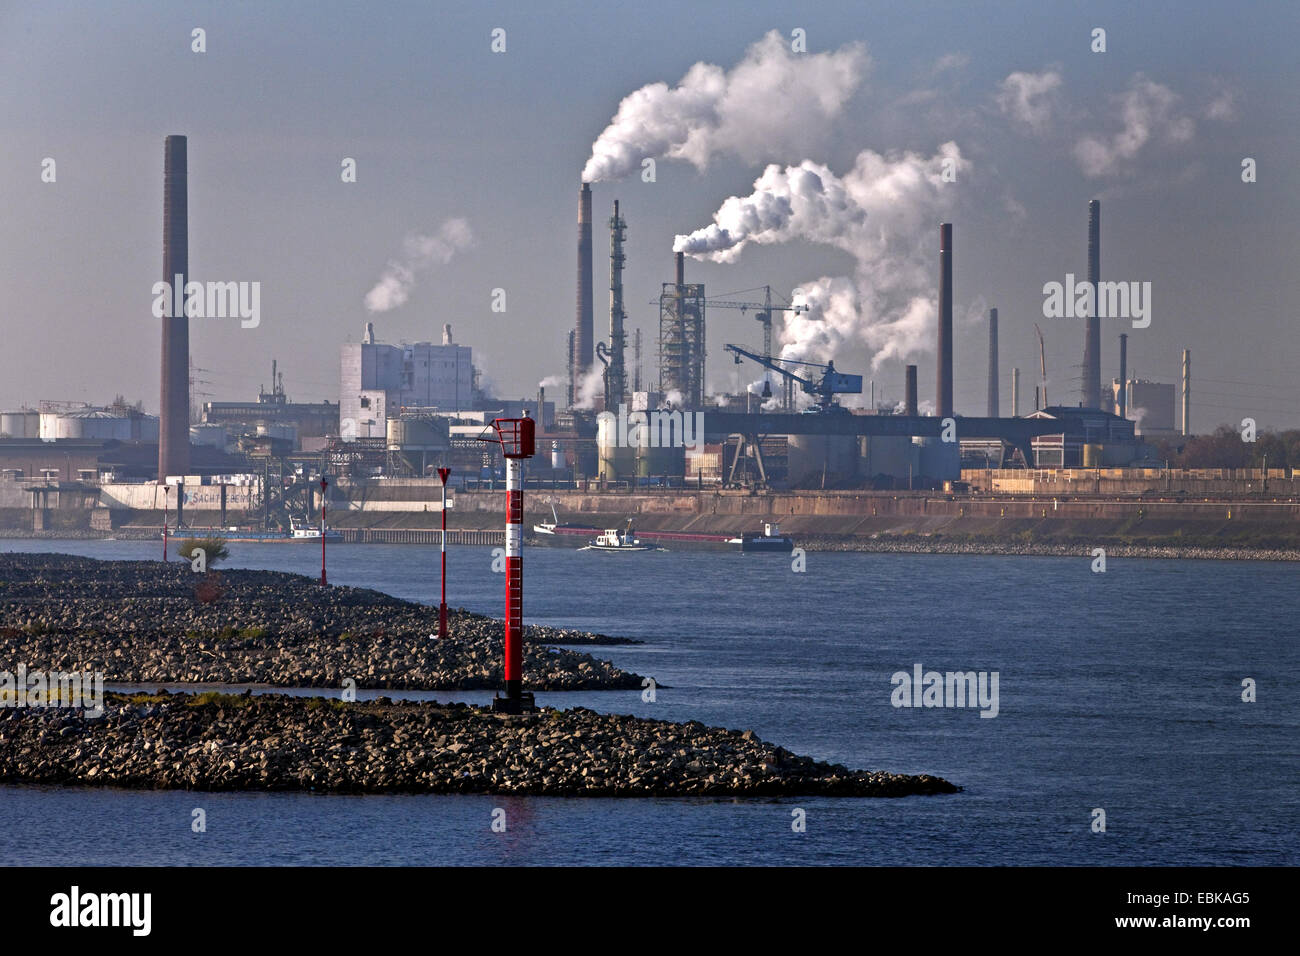 Ruhr flowing into Rhine, industrial scenery in background, Germany, North Rhine-Westphalia, Ruhr Area, Duisburg - Stock Image